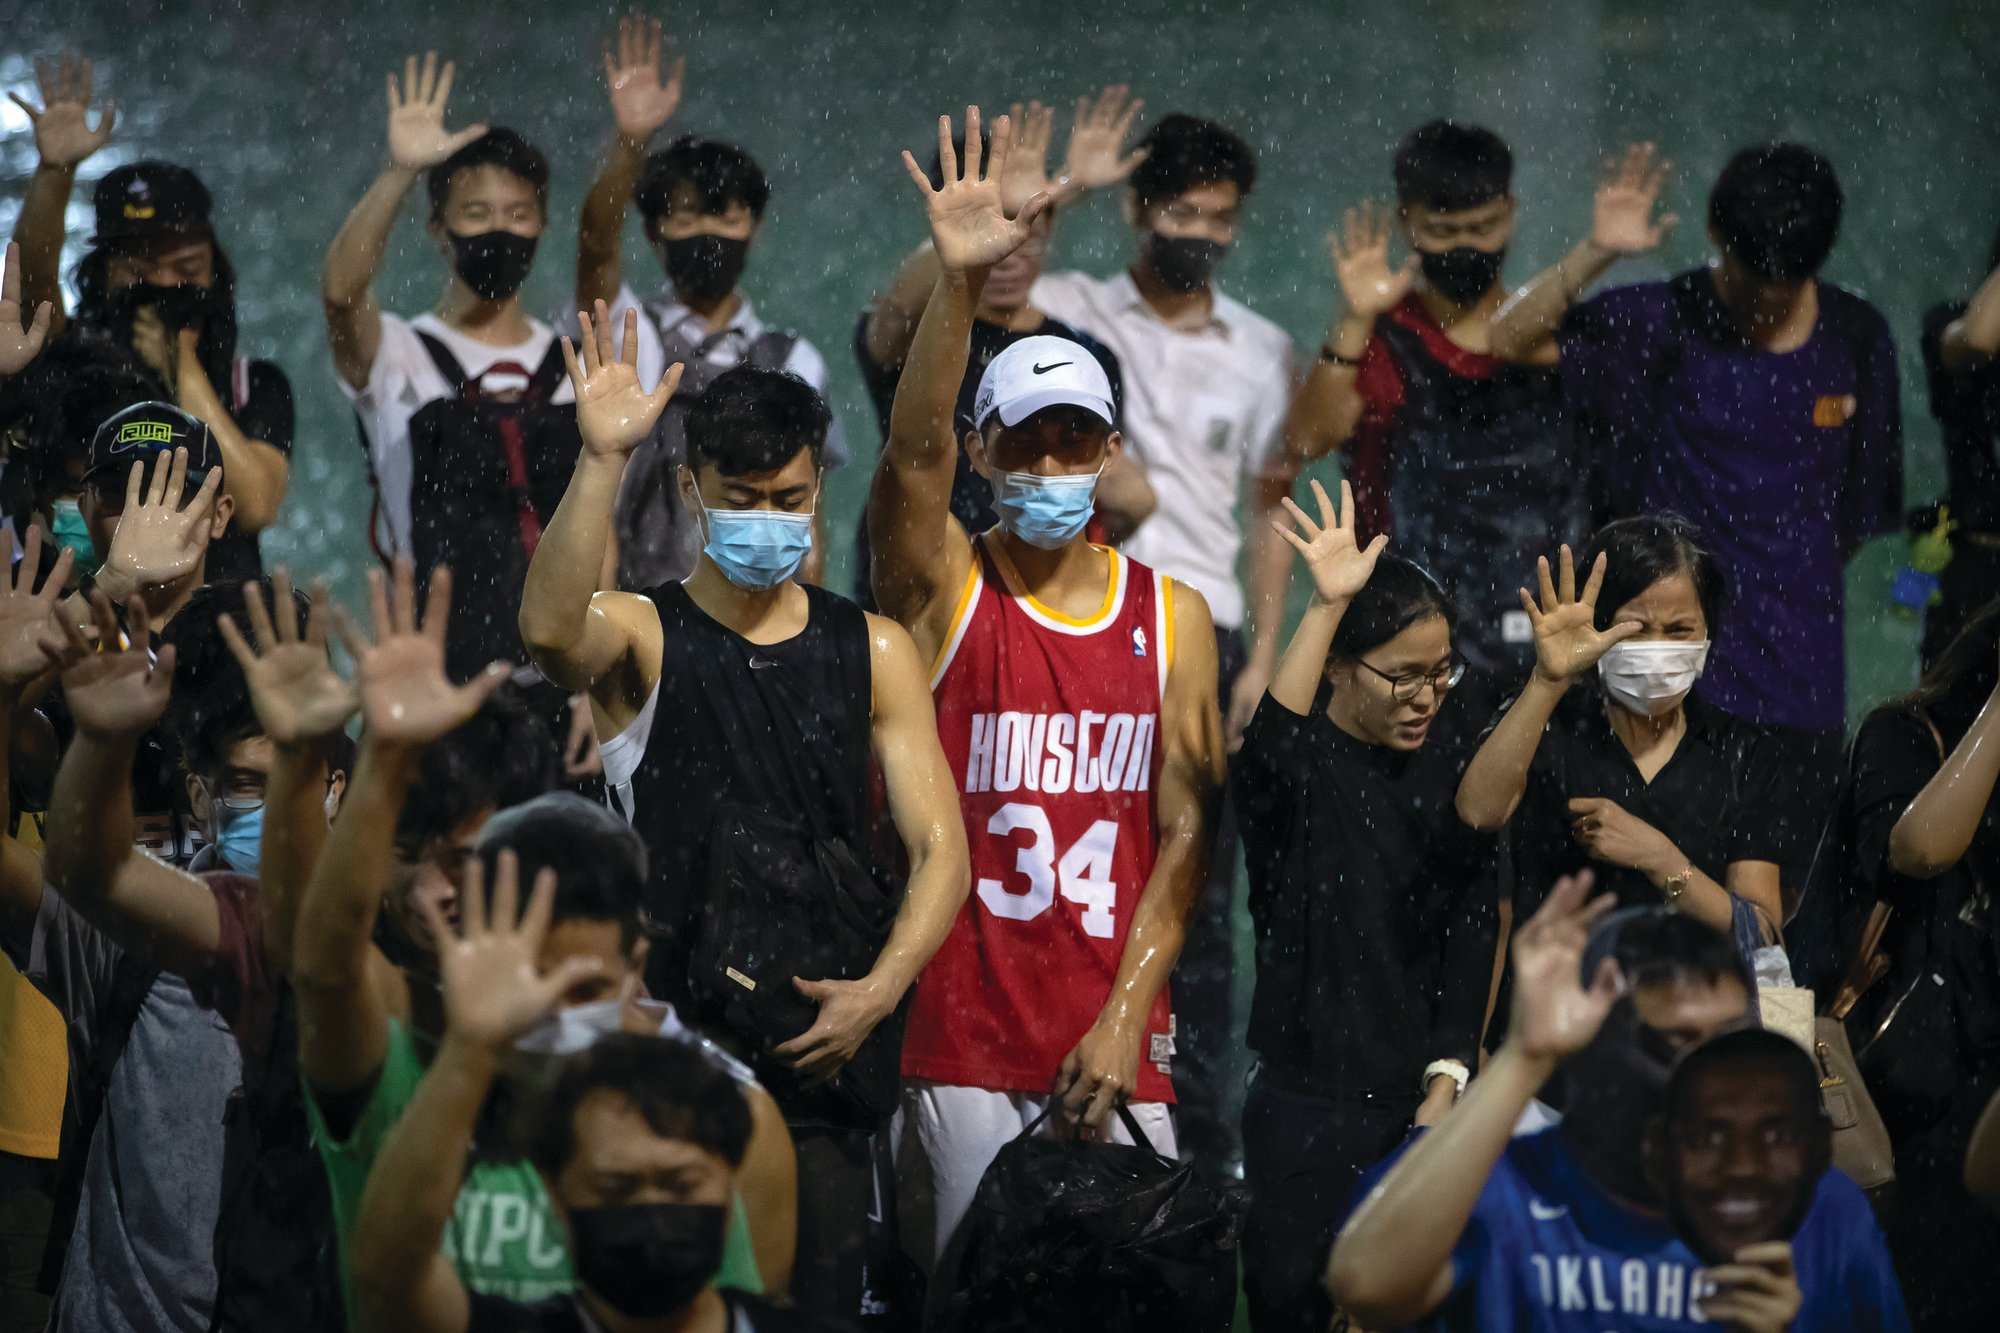 A demonstrator wearing a Houston Rockets jersey holds up his hand with fellow demonstrators during a rally at the Southorn Playground in Hong Kong on Tuesday. Protesters have thrown basketballs at a photo of LeBron James and chanted their anger about comments the Los Angeles Lakers star made about free speech.